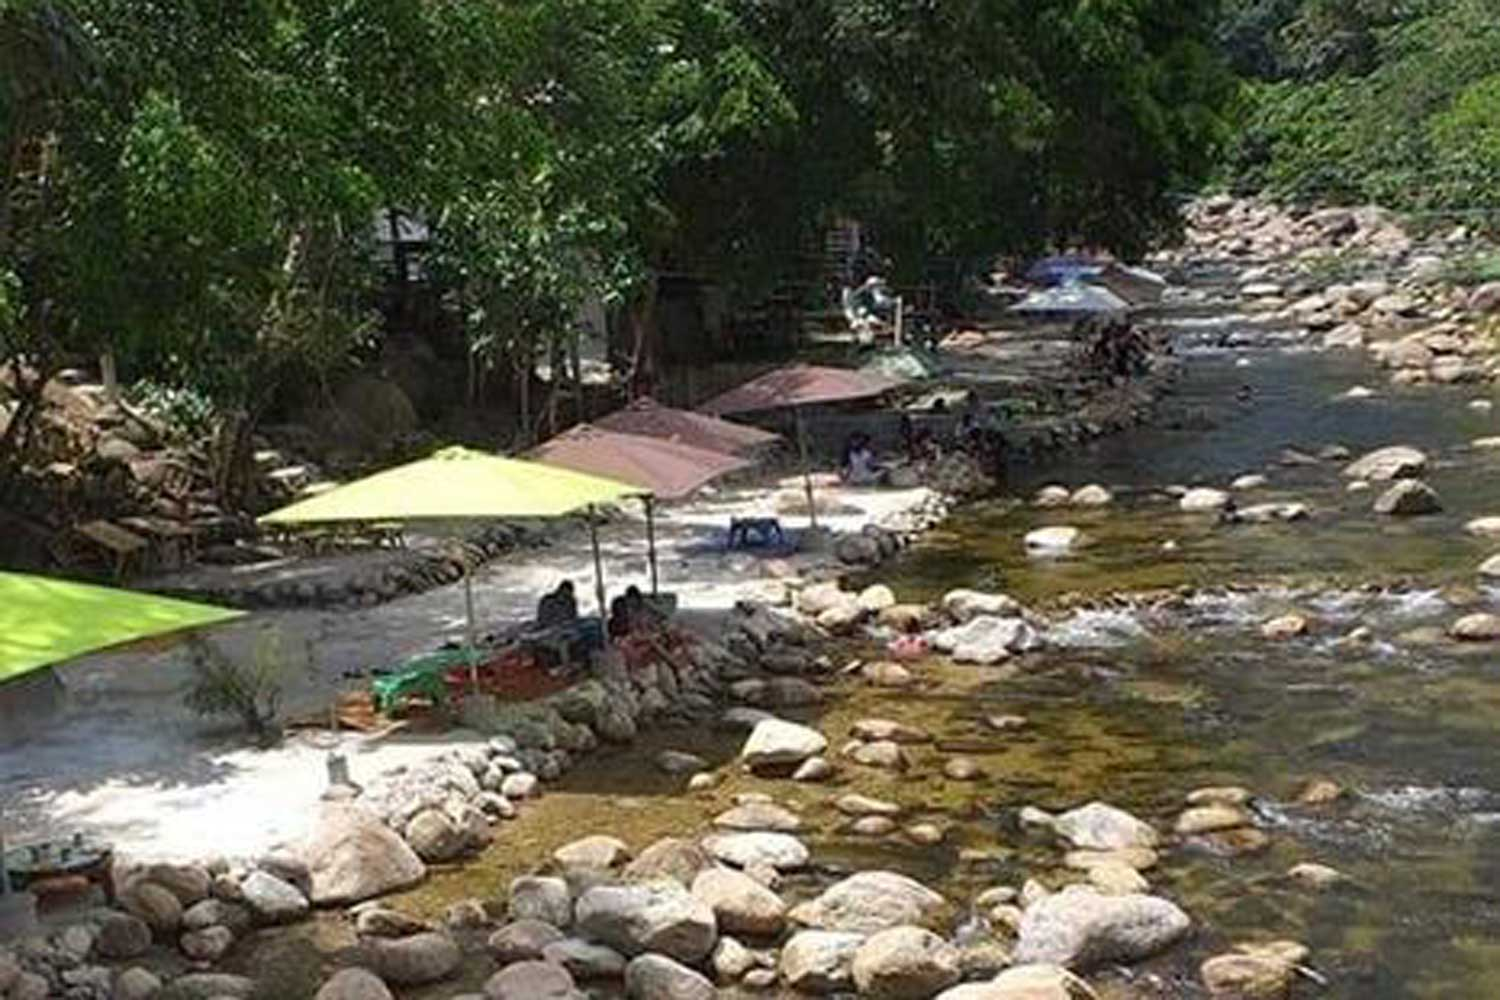 Cement areas for tourists are allegedly encroaching on the Klong Tha Dee in Khiriwong village, Nakhon Si Thammarat. (Photo from Facebook page of Chom Rom Strong-Jit Porpiang Tan Thudjarit)